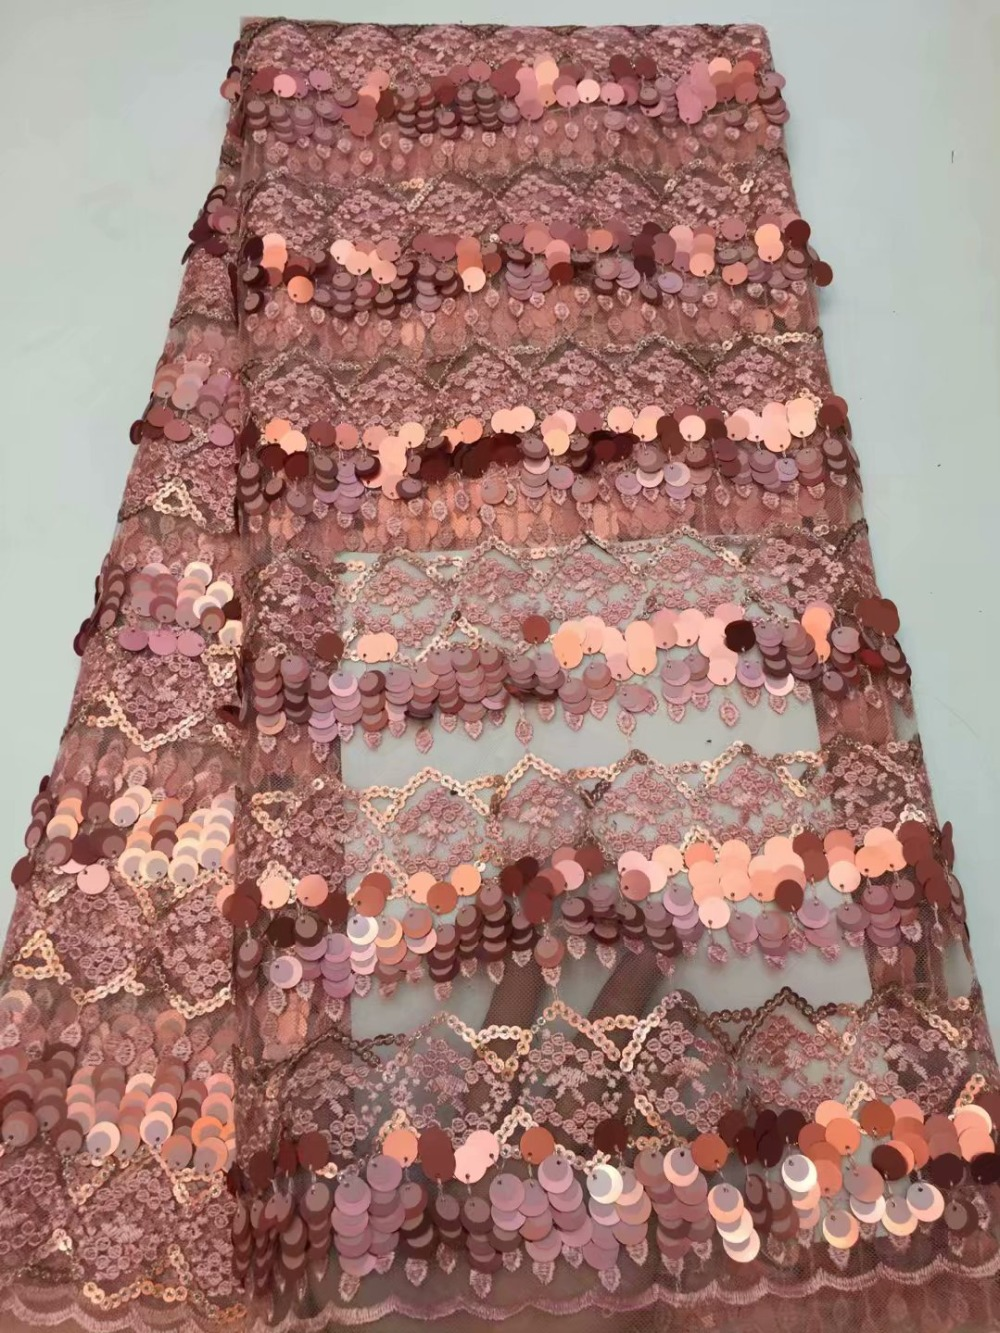 Free shipping african lace fabric high quality french guipure lace fabric new arrival sequins lace fabric for partyFree shipping african lace fabric high quality french guipure lace fabric new arrival sequins lace fabric for party